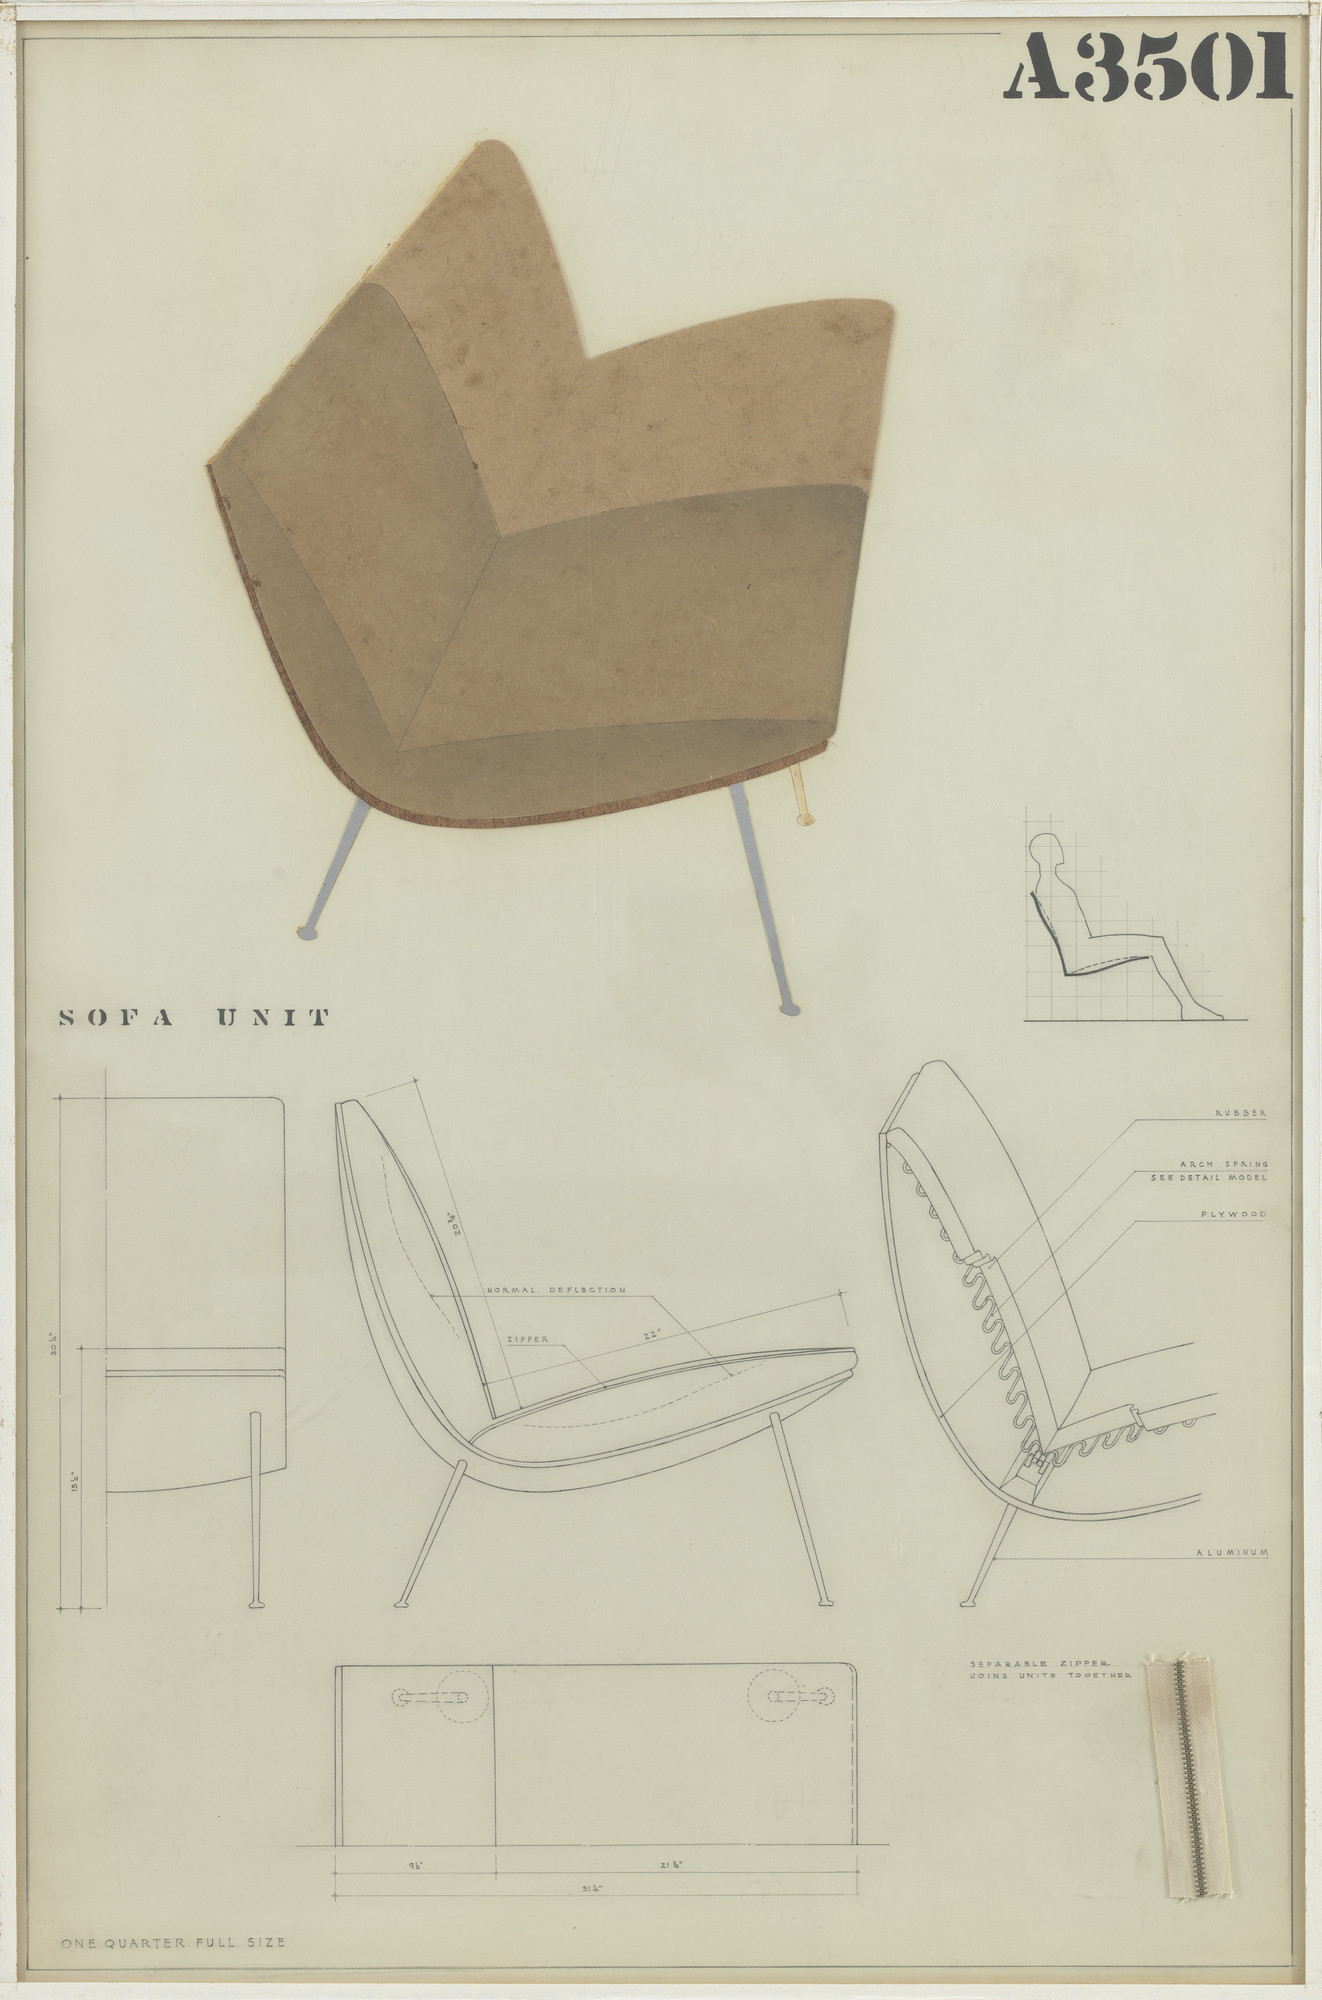 Charles Eames, Eero Saarinen. Sofa Unit (Entry Panel for MoMA Competition for Organic Design in Home Furnishings). 1940